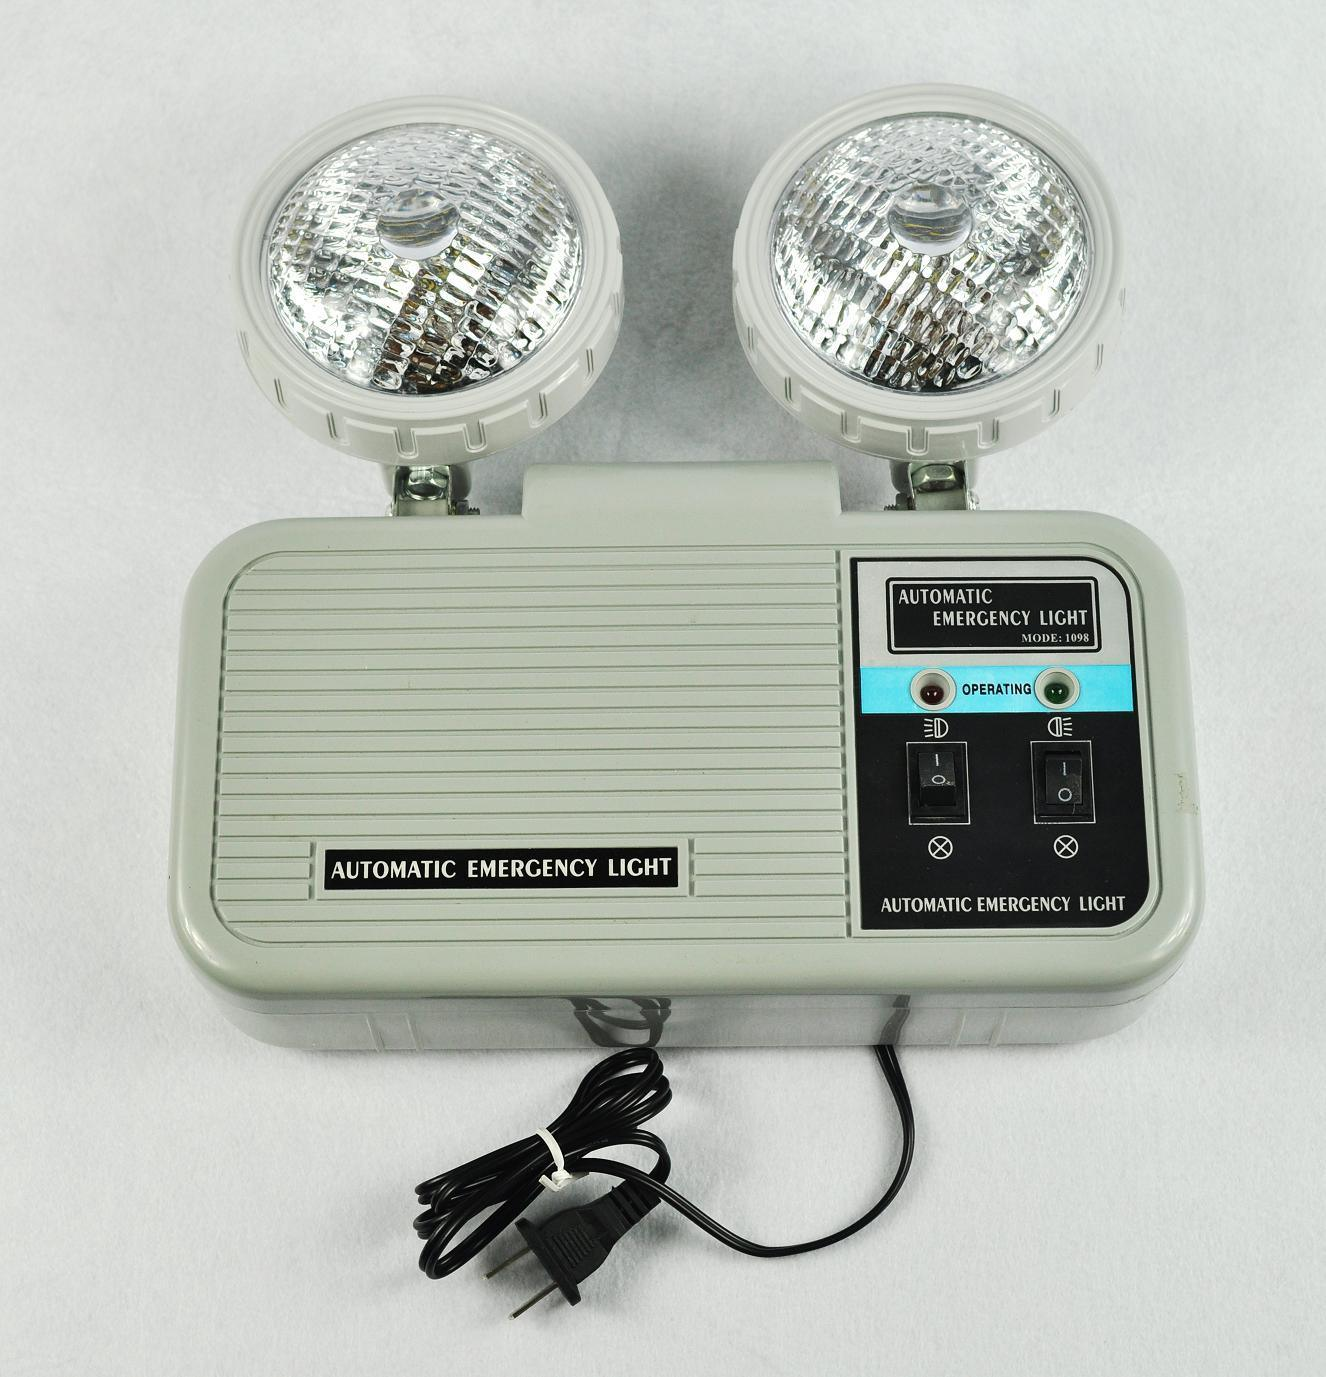 China 2x5w Twin Spot Rechargeable Lamp Emergency Led Light Low Cost Automatic Ligh Spots